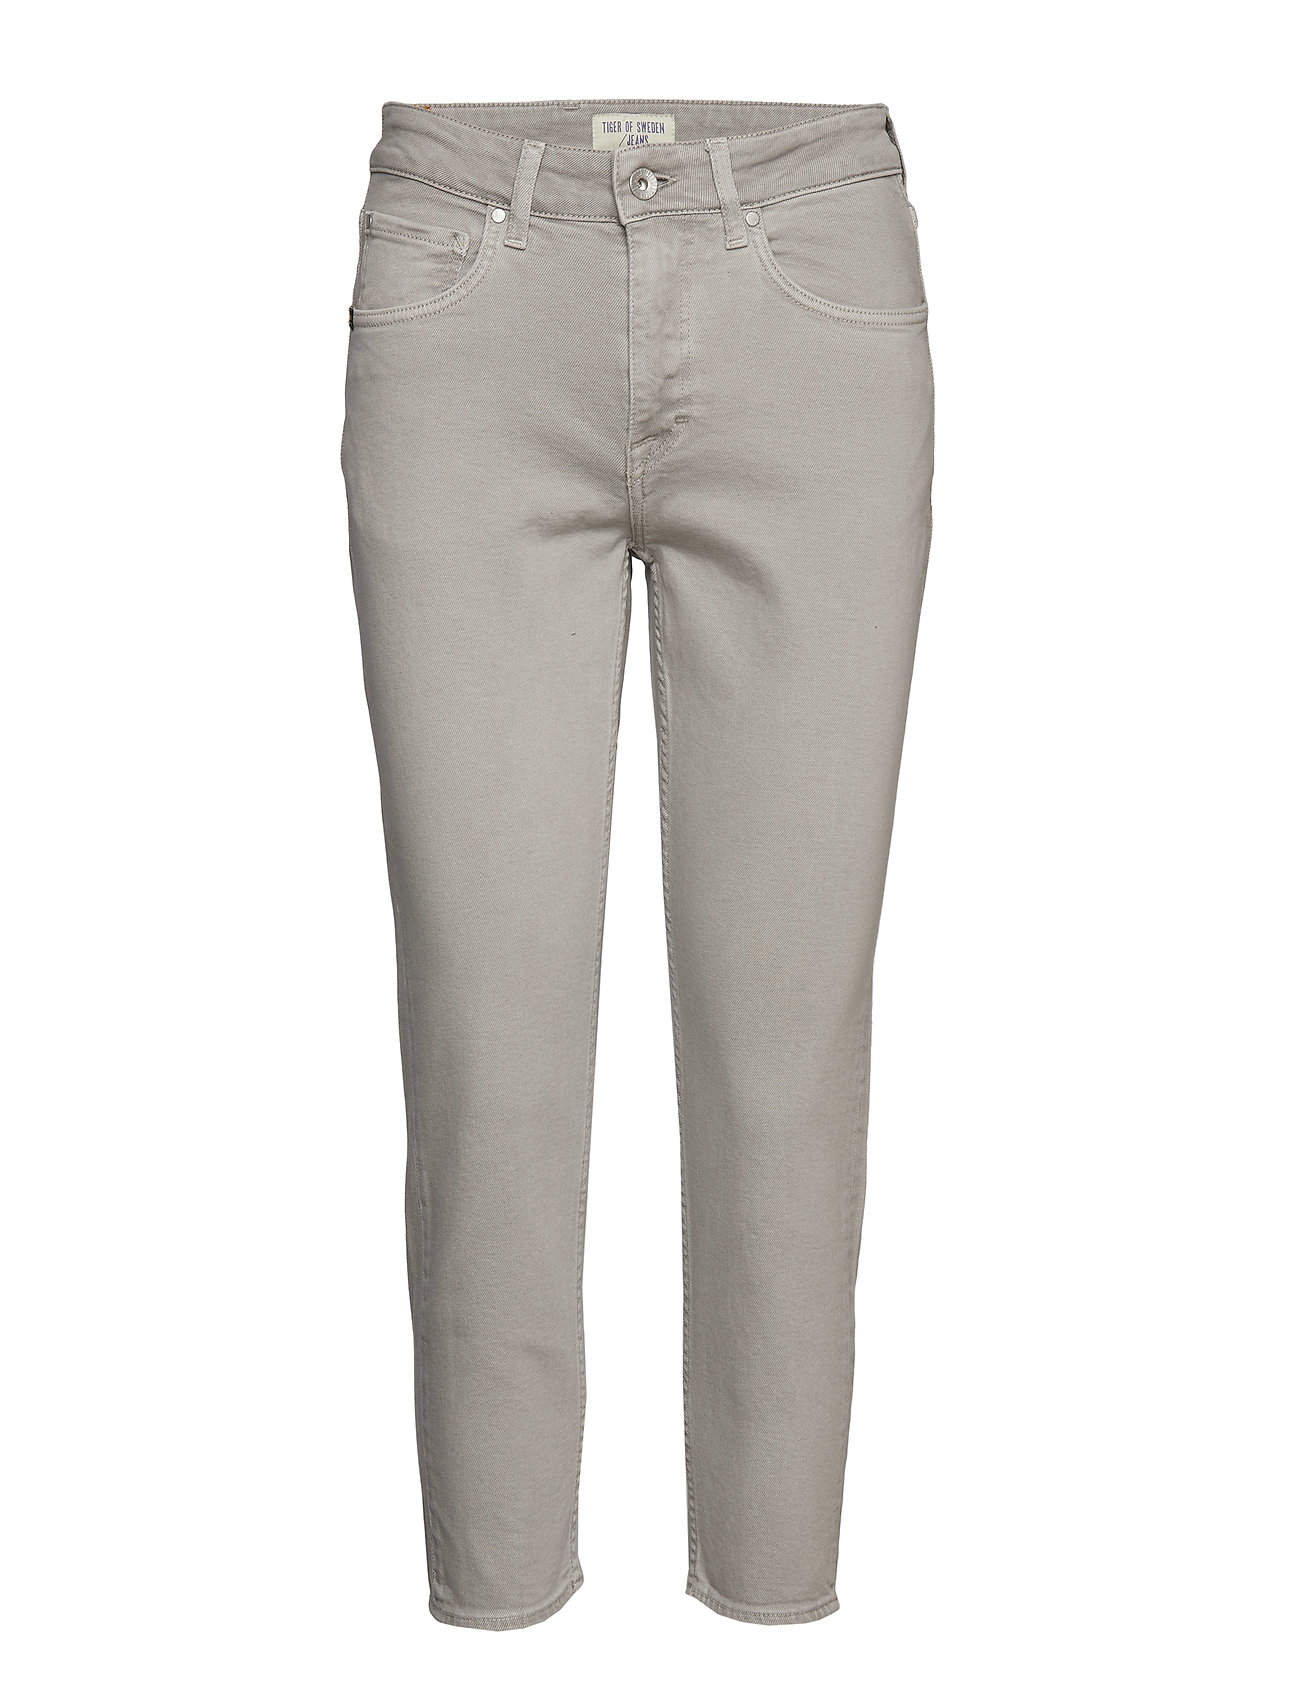 Tiger of Sweden Jeans LEA - ICE GREY